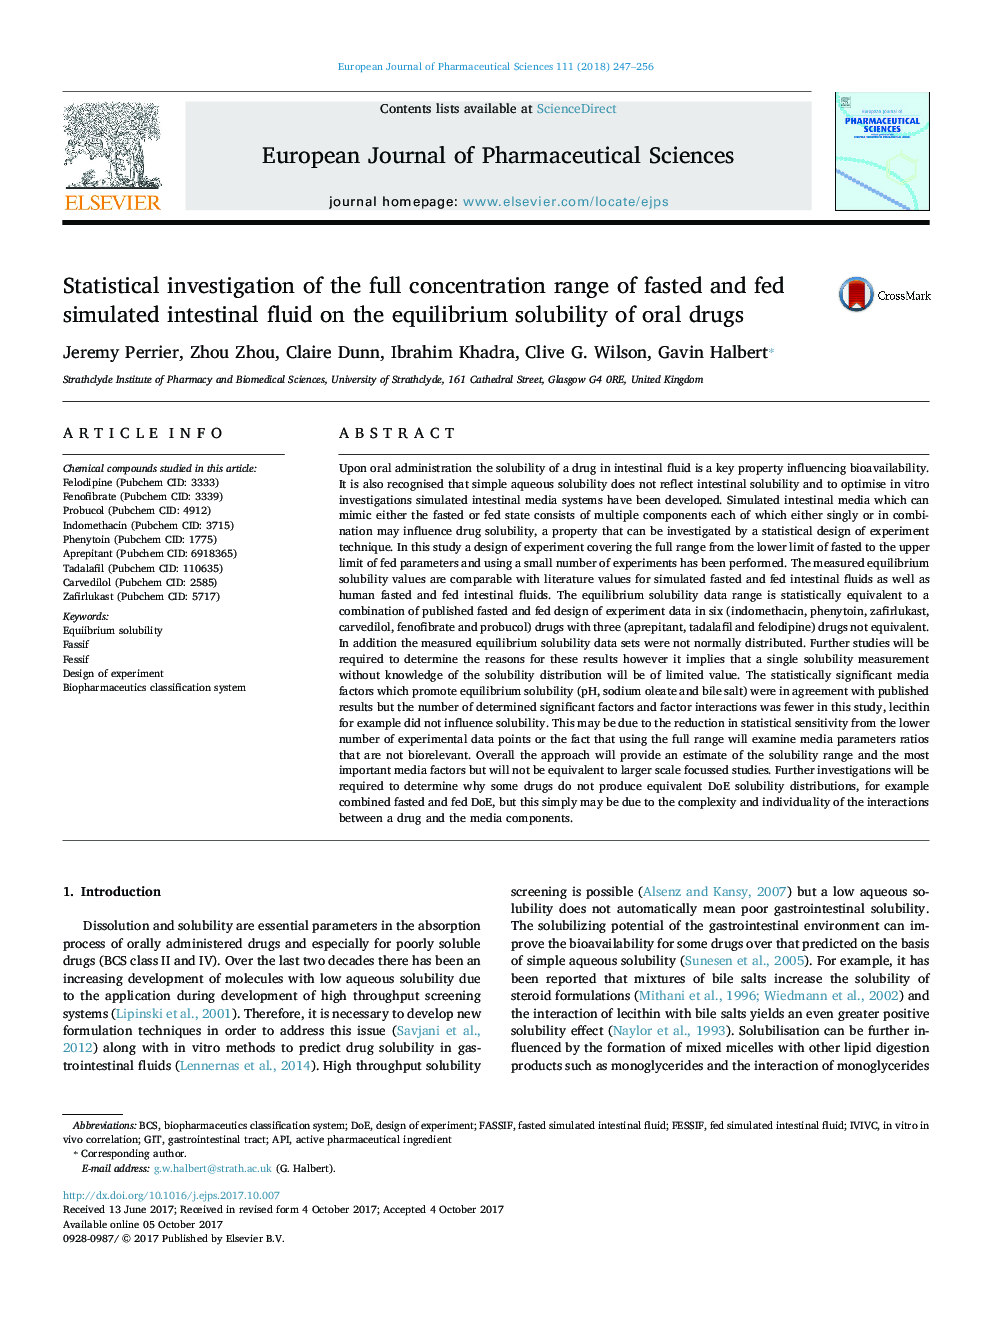 Statistical investigation of the full concentration range of fasted and fed simulated intestinal fluid on the equilibrium solubility of oral drugs